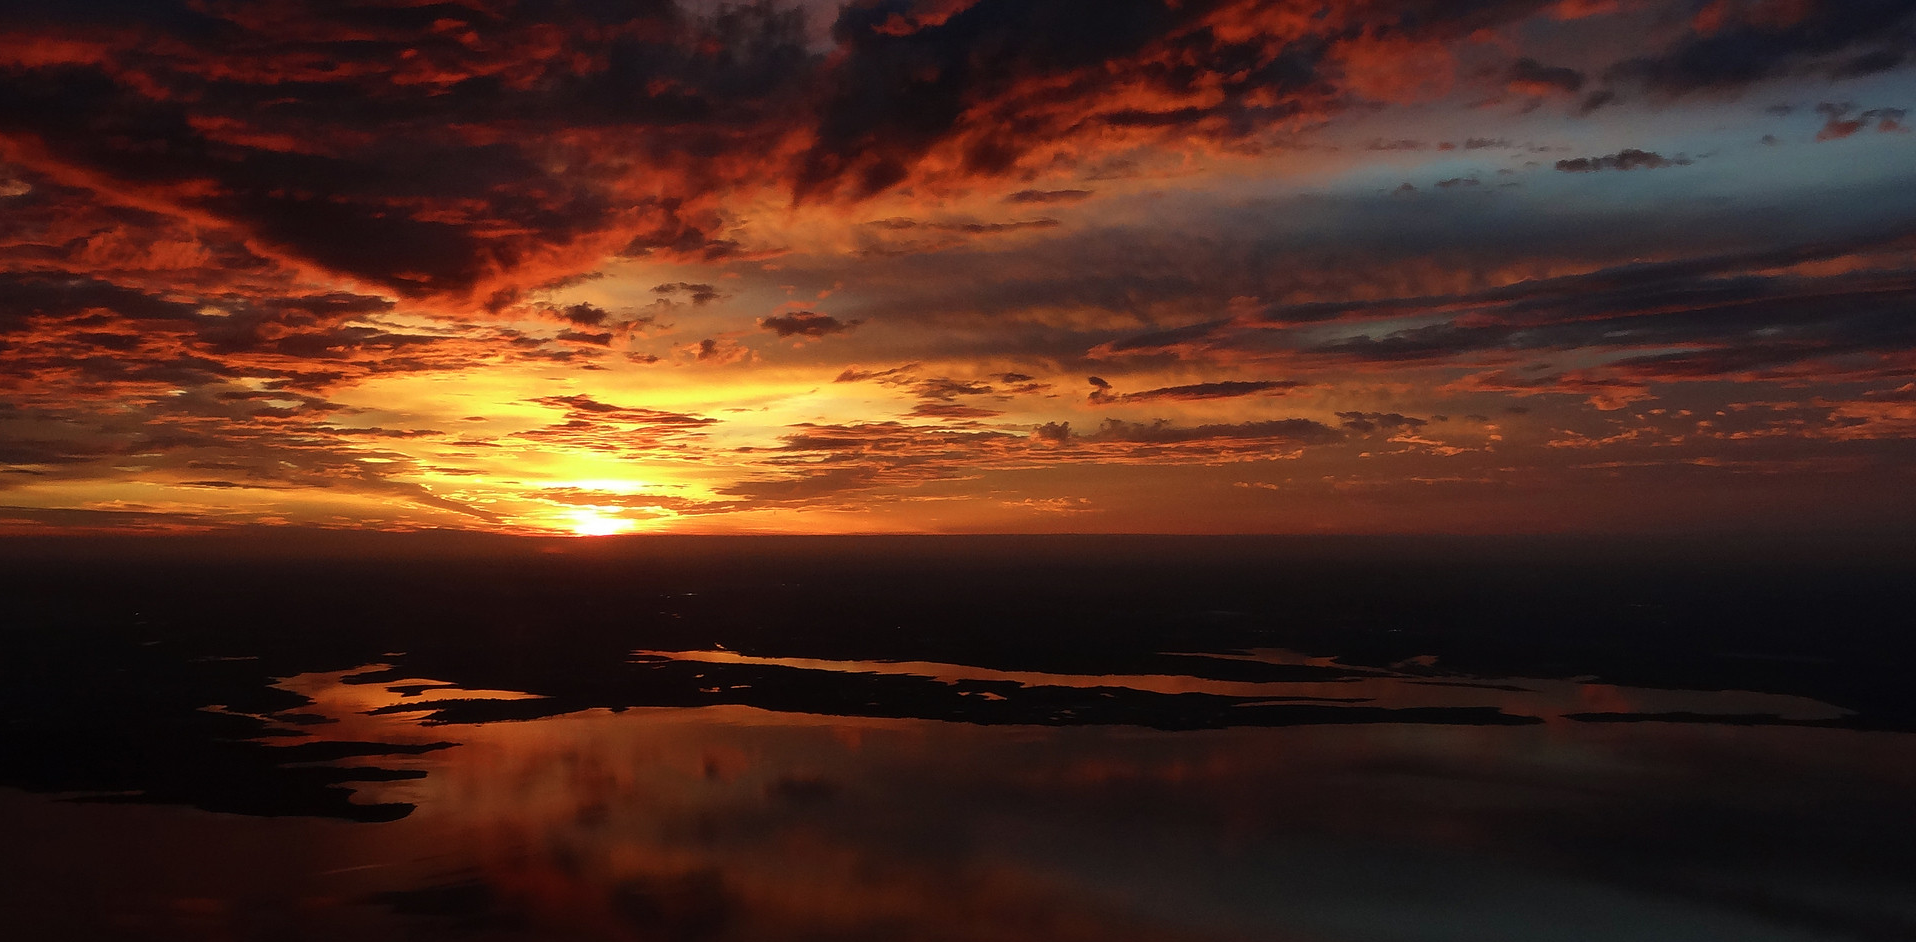 an image of a sunrise from above ground